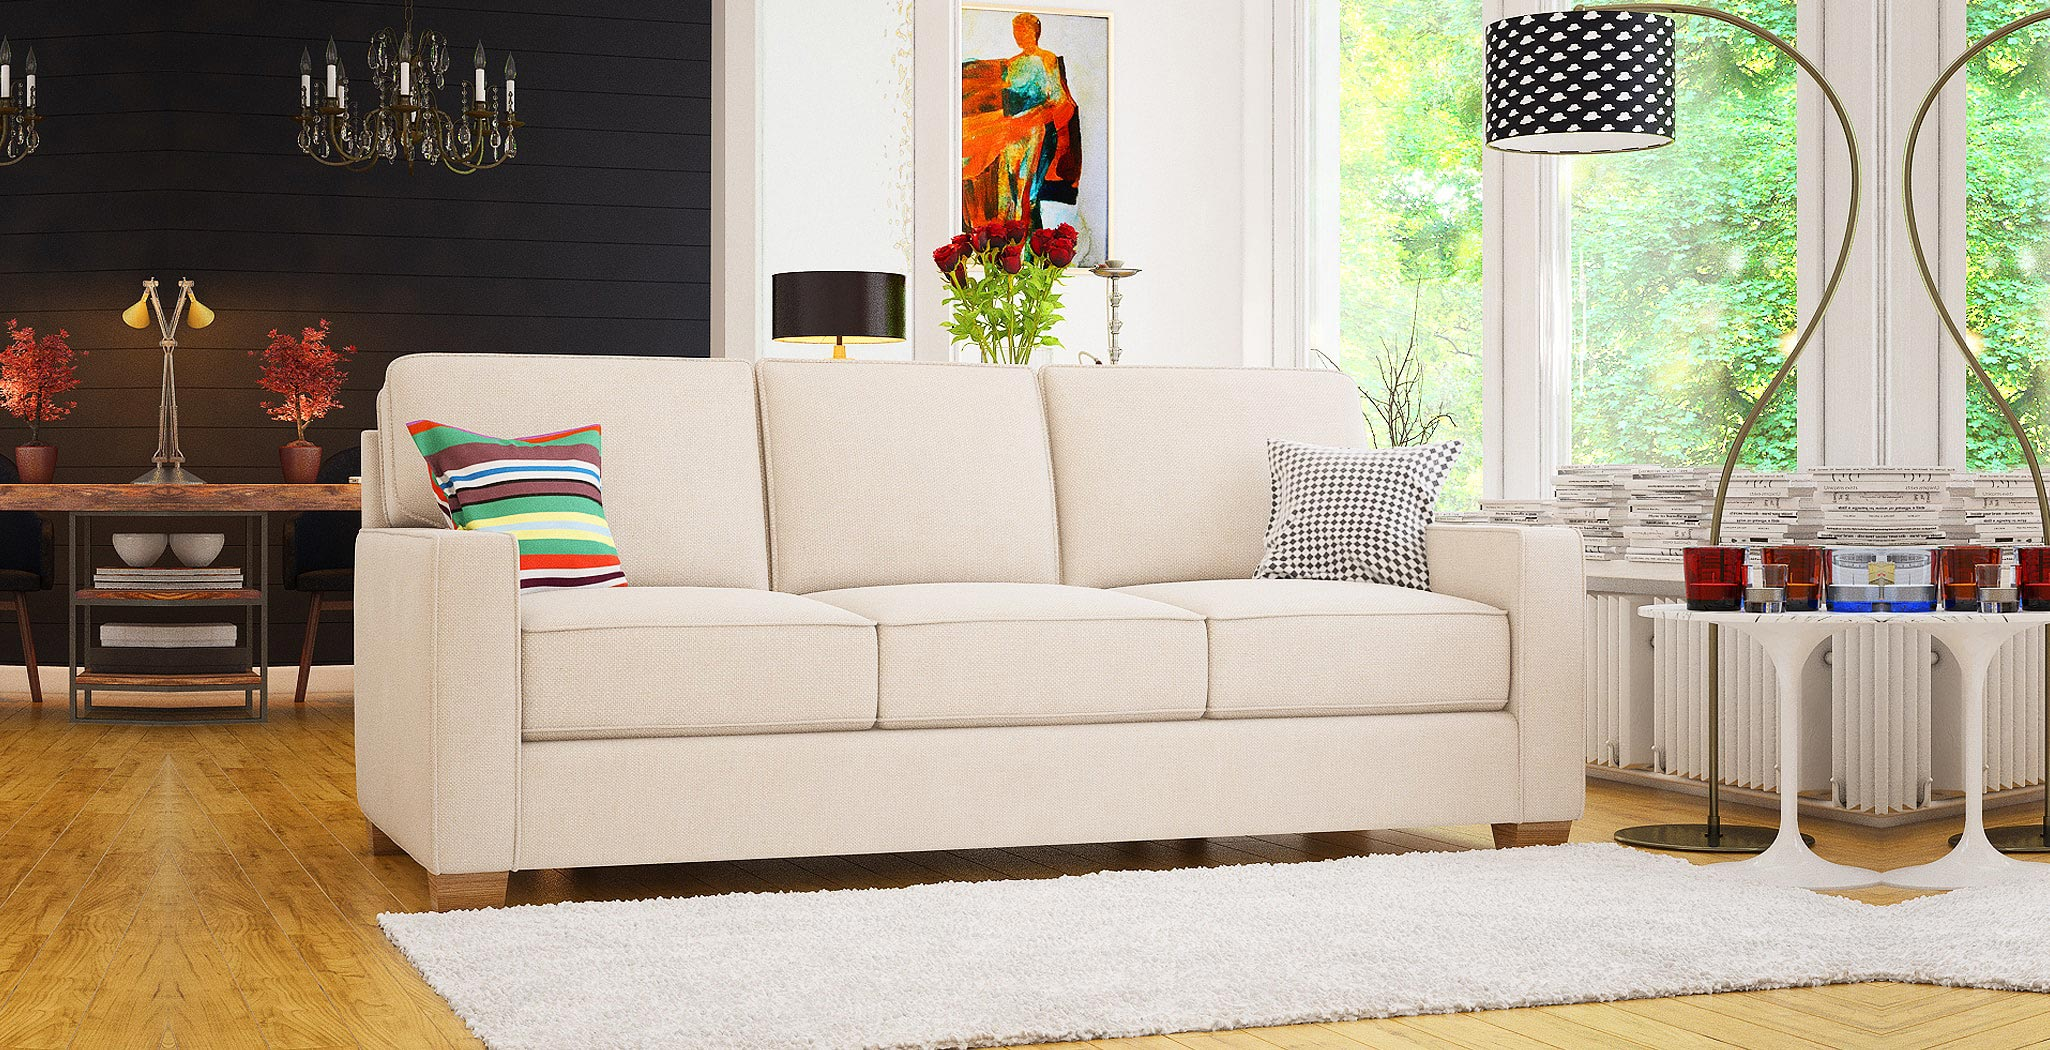 chicago sofa premium furiture DreamSofa